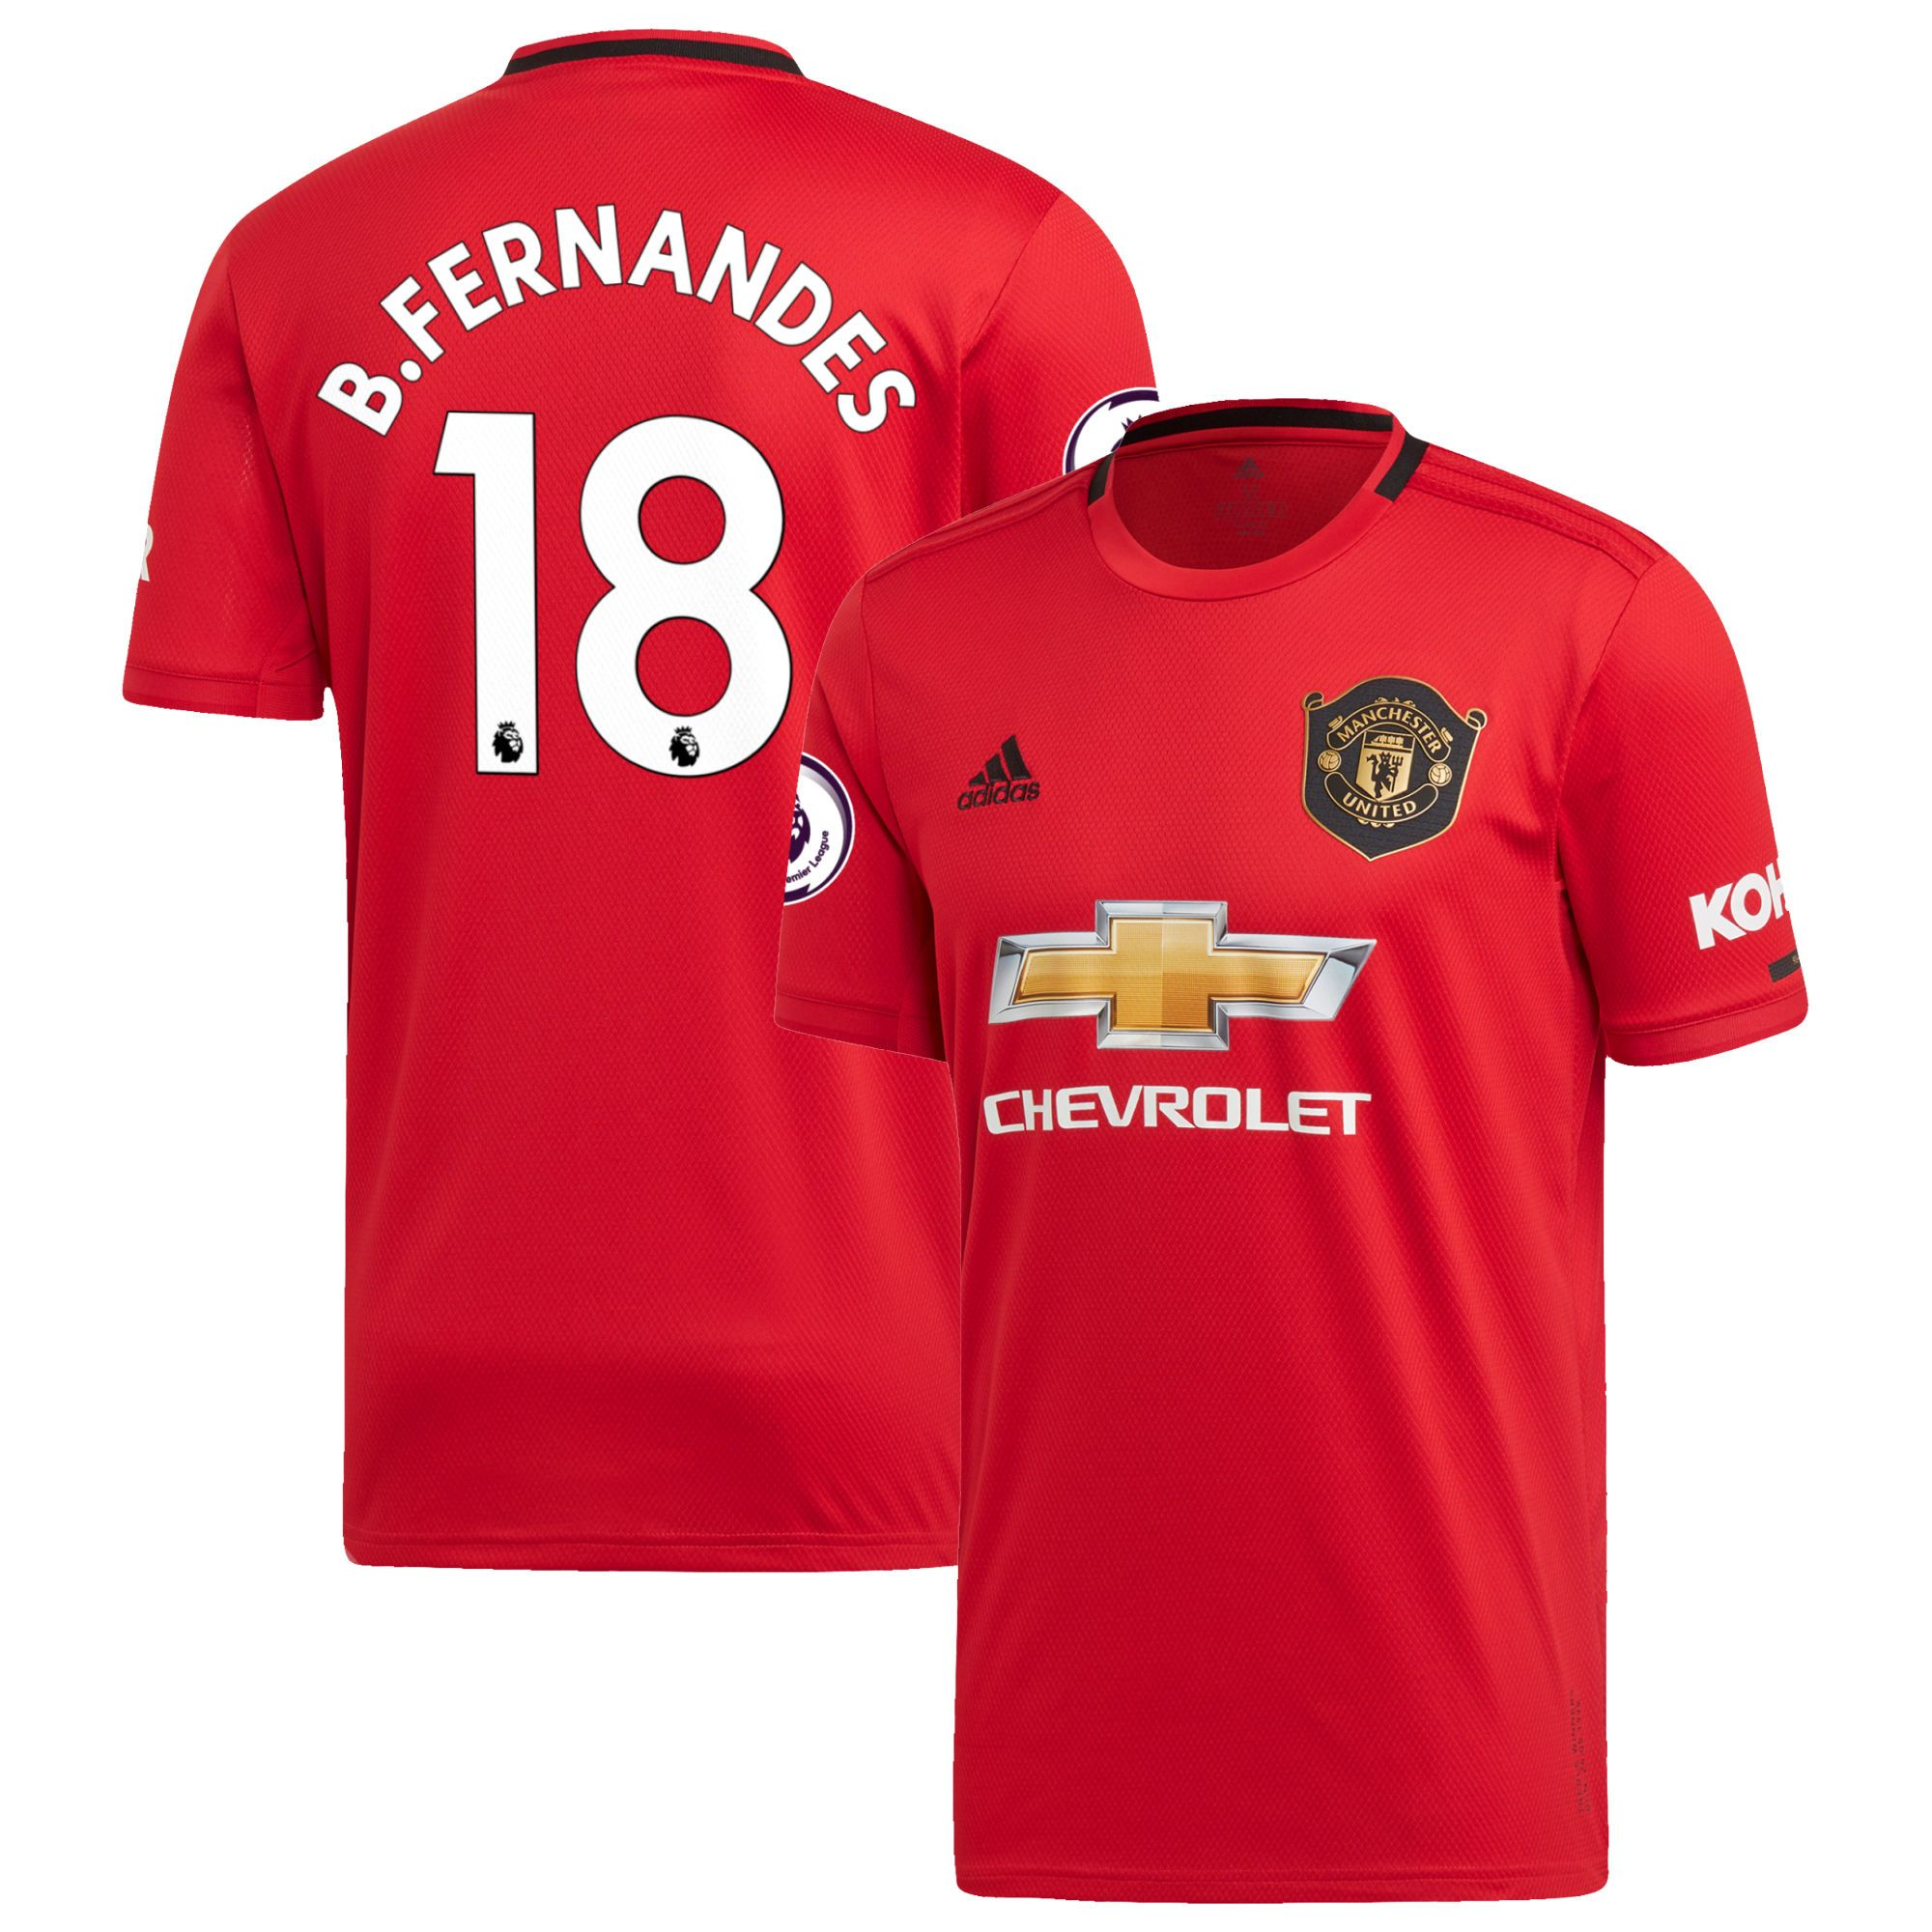 Bruno Fernandes Manchester United Adidas 2019 20 Home Replica Jersey Red In 2020 Manchester United Manchester Manchester United Fans